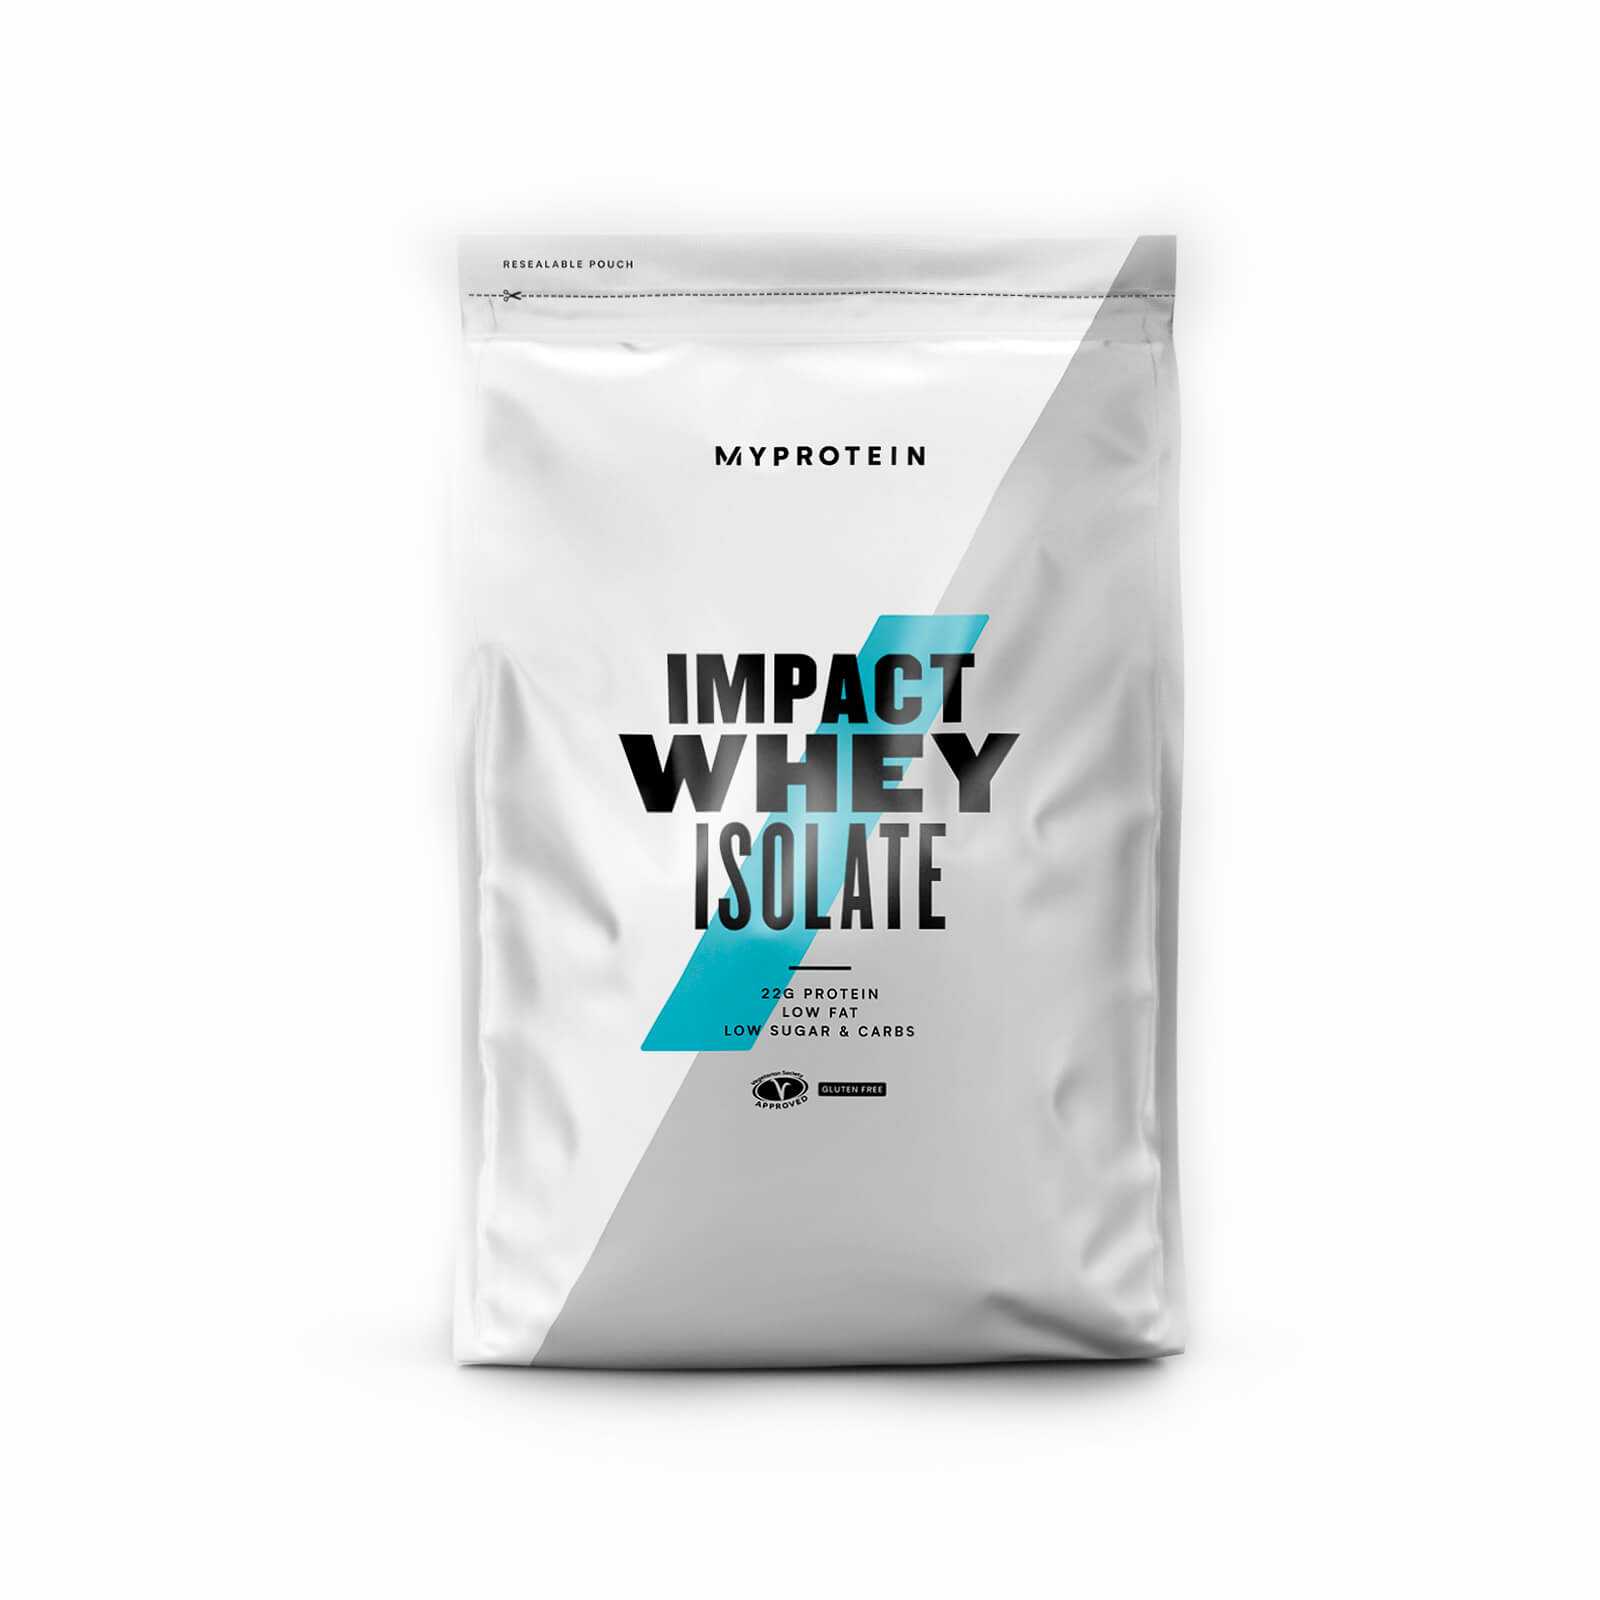 Impact Whey Isolate Reviews